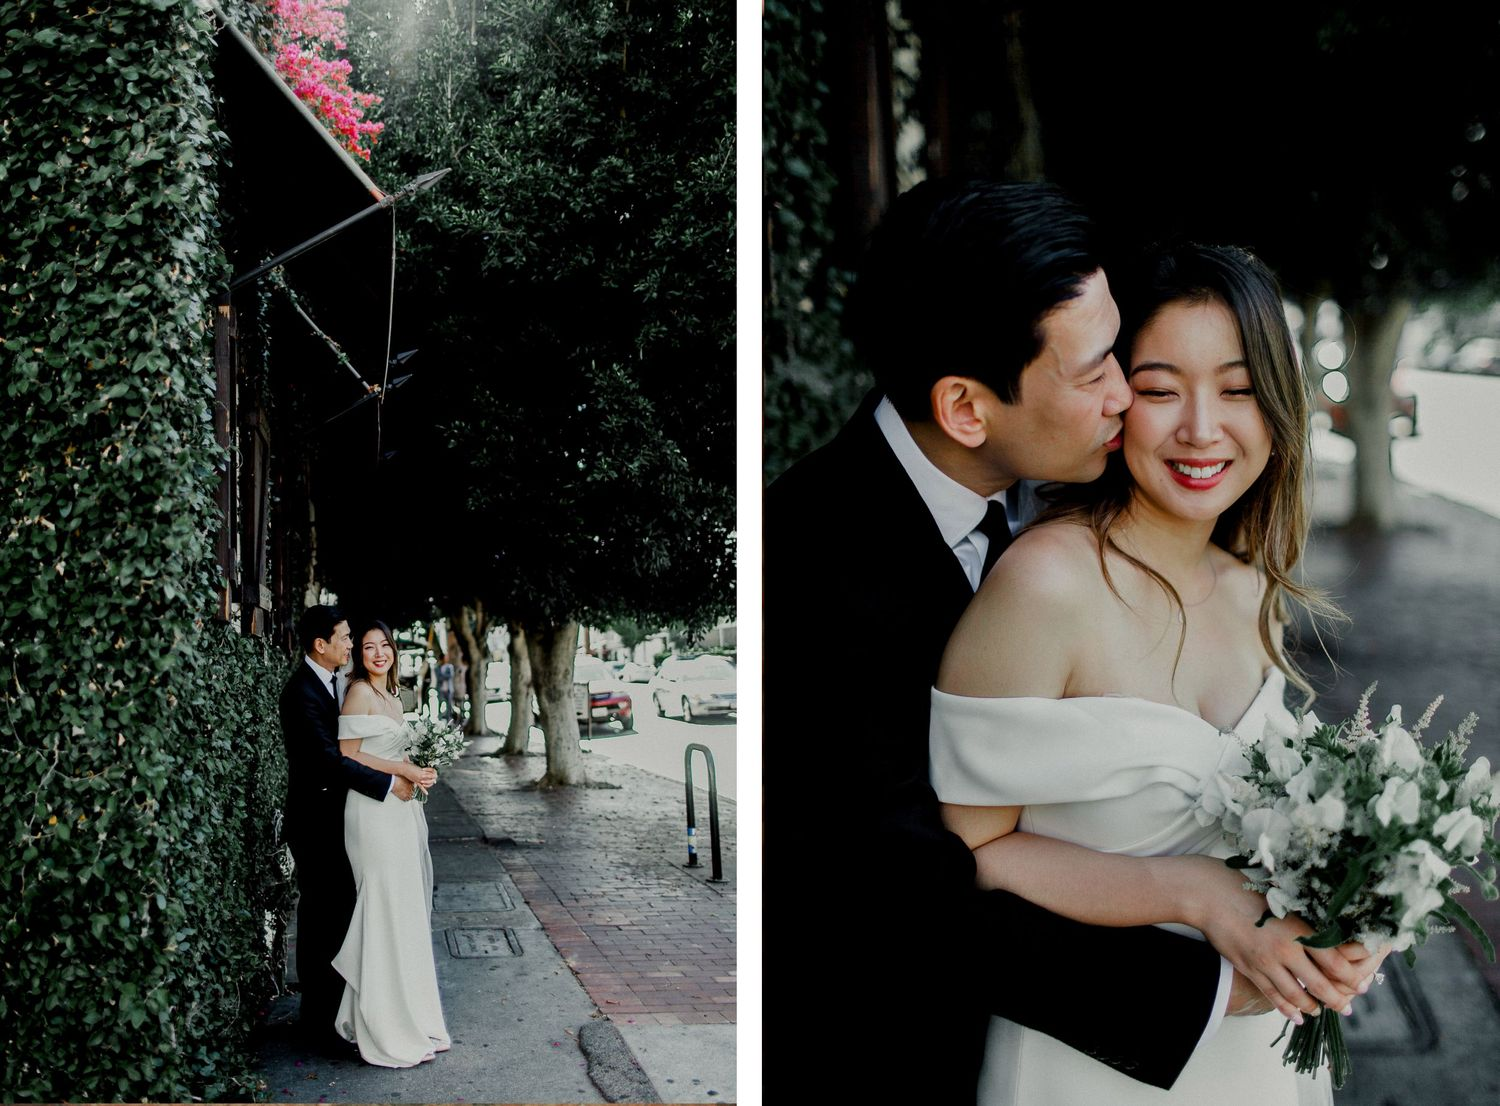 groom kissing bride standing on sidewalk in front of A.O.C. Los Angeles